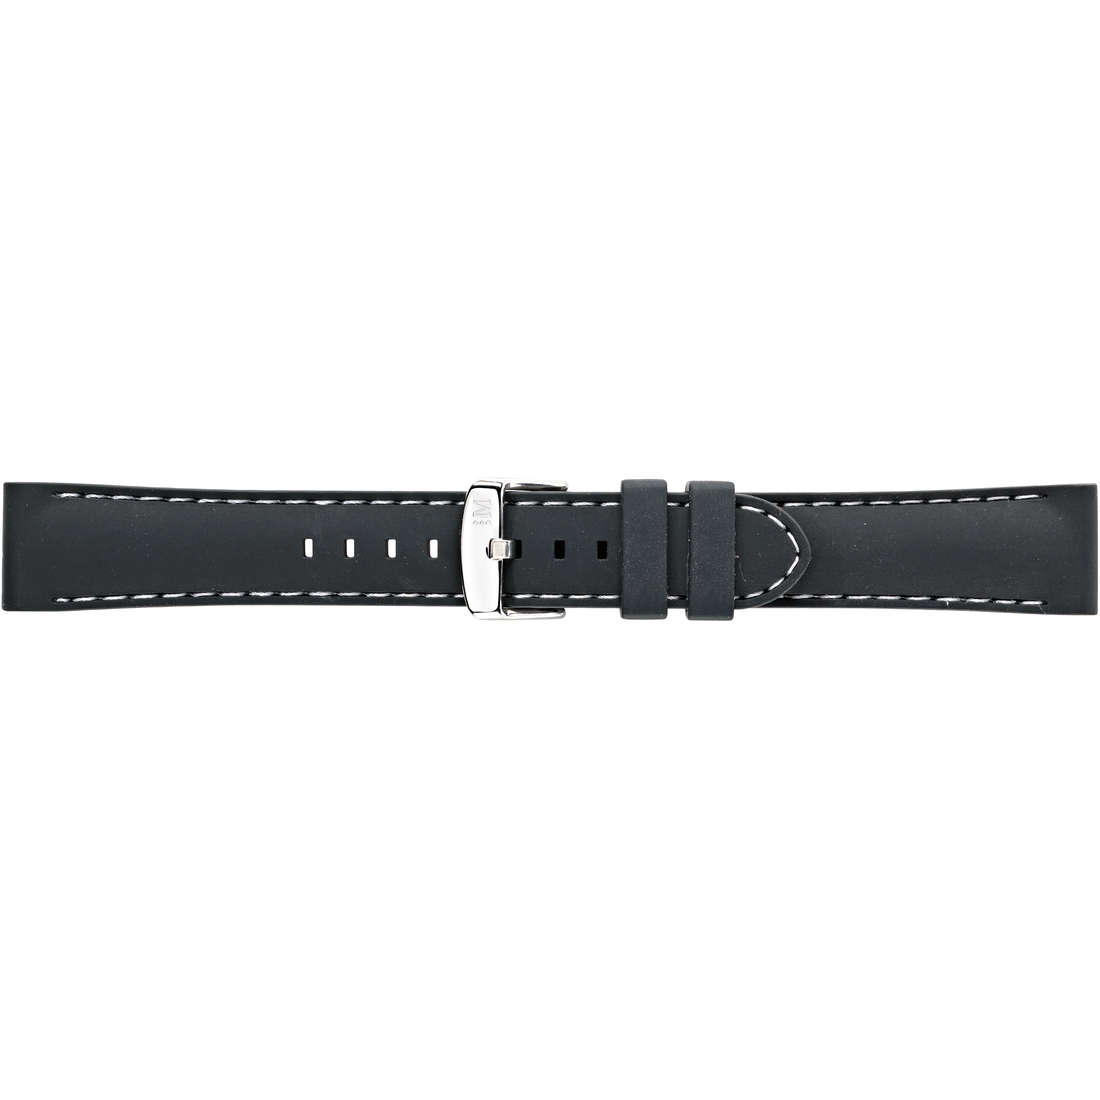 watch watch bands watch straps man Morellato Technogomma A01U3844187019CR20